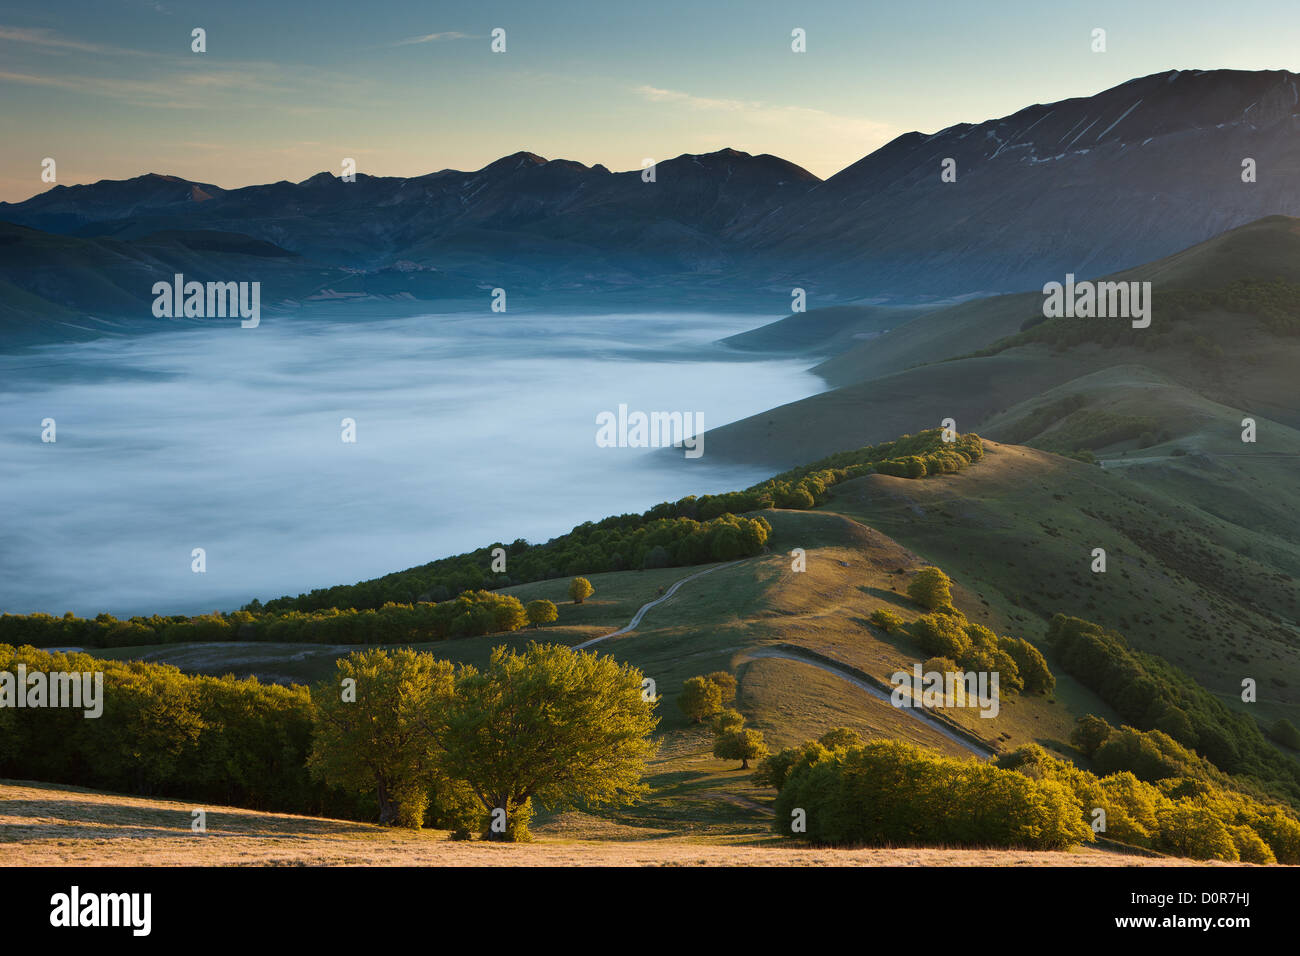 the Piano Grande at dawn, Monti Sibillini National Park, Umbria, Italy - Stock Image